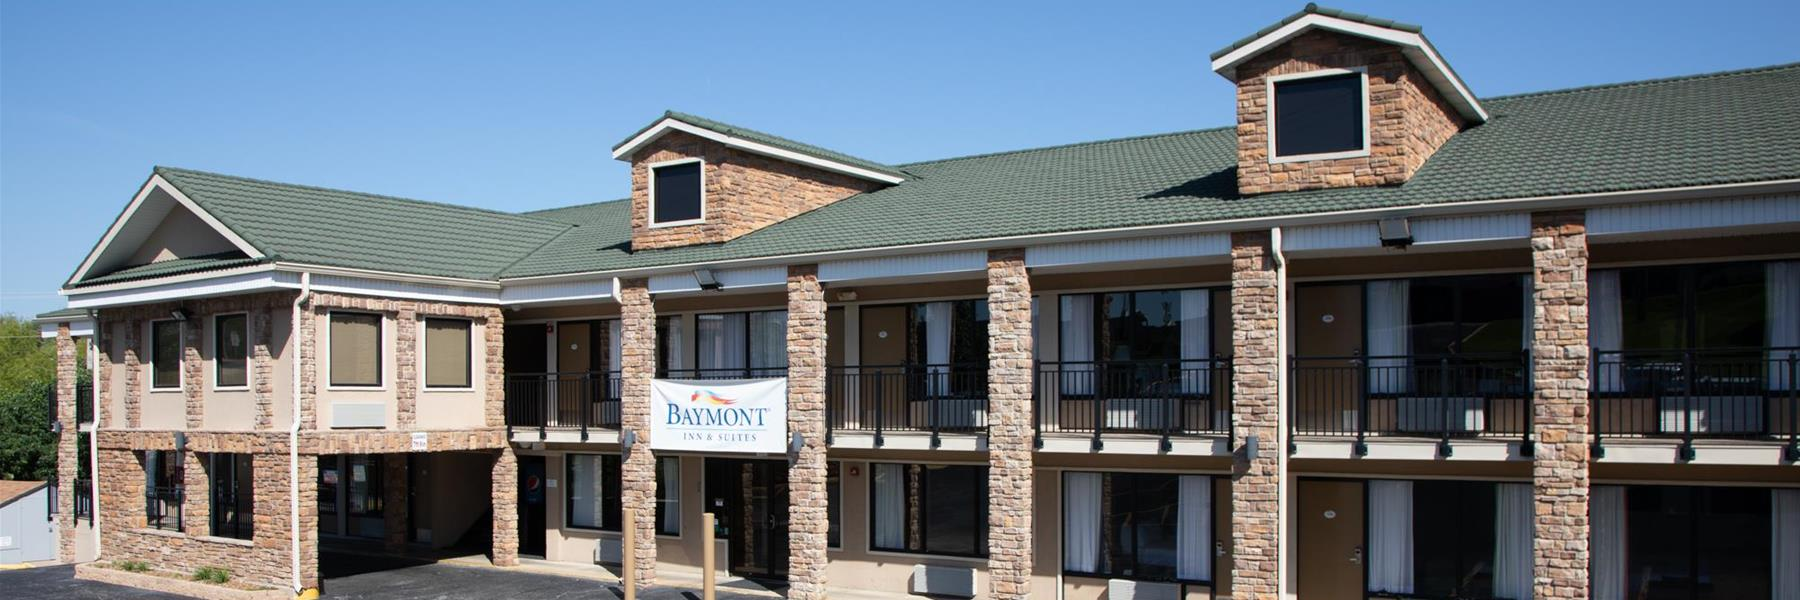 Baymont by Wyndham Branson -Theater District in Branson, Missouri